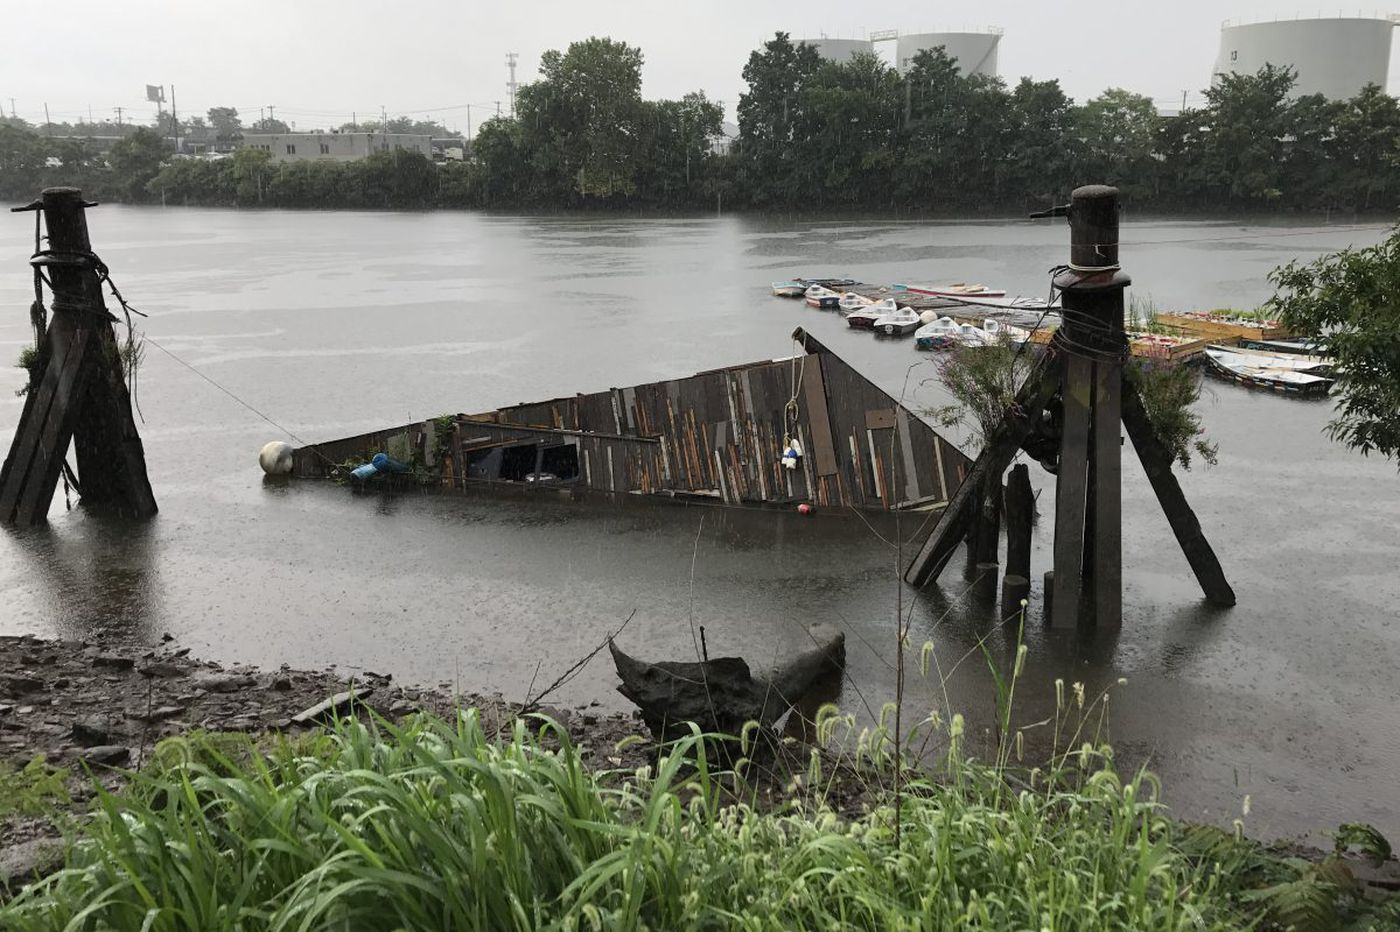 WetLand, an artwork about rising waters, sinks in the Schuylkill